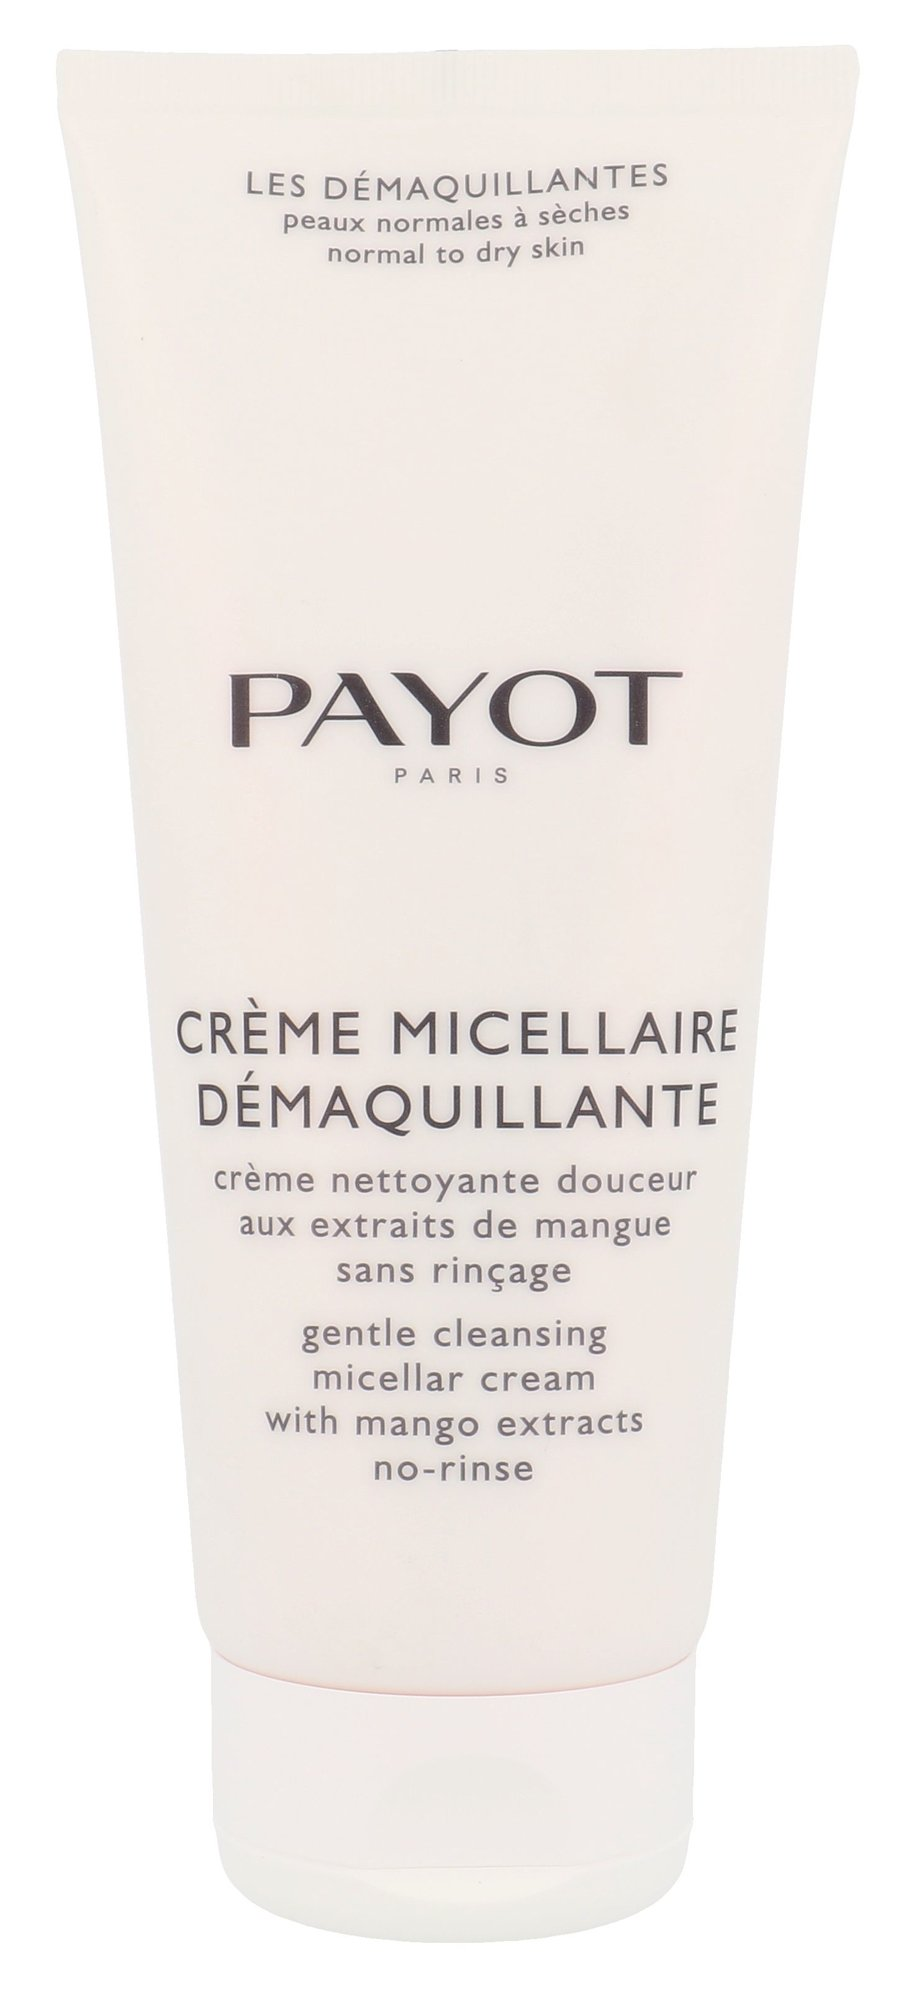 PAYOT Les Démaquillantes Cosmetic 200ml